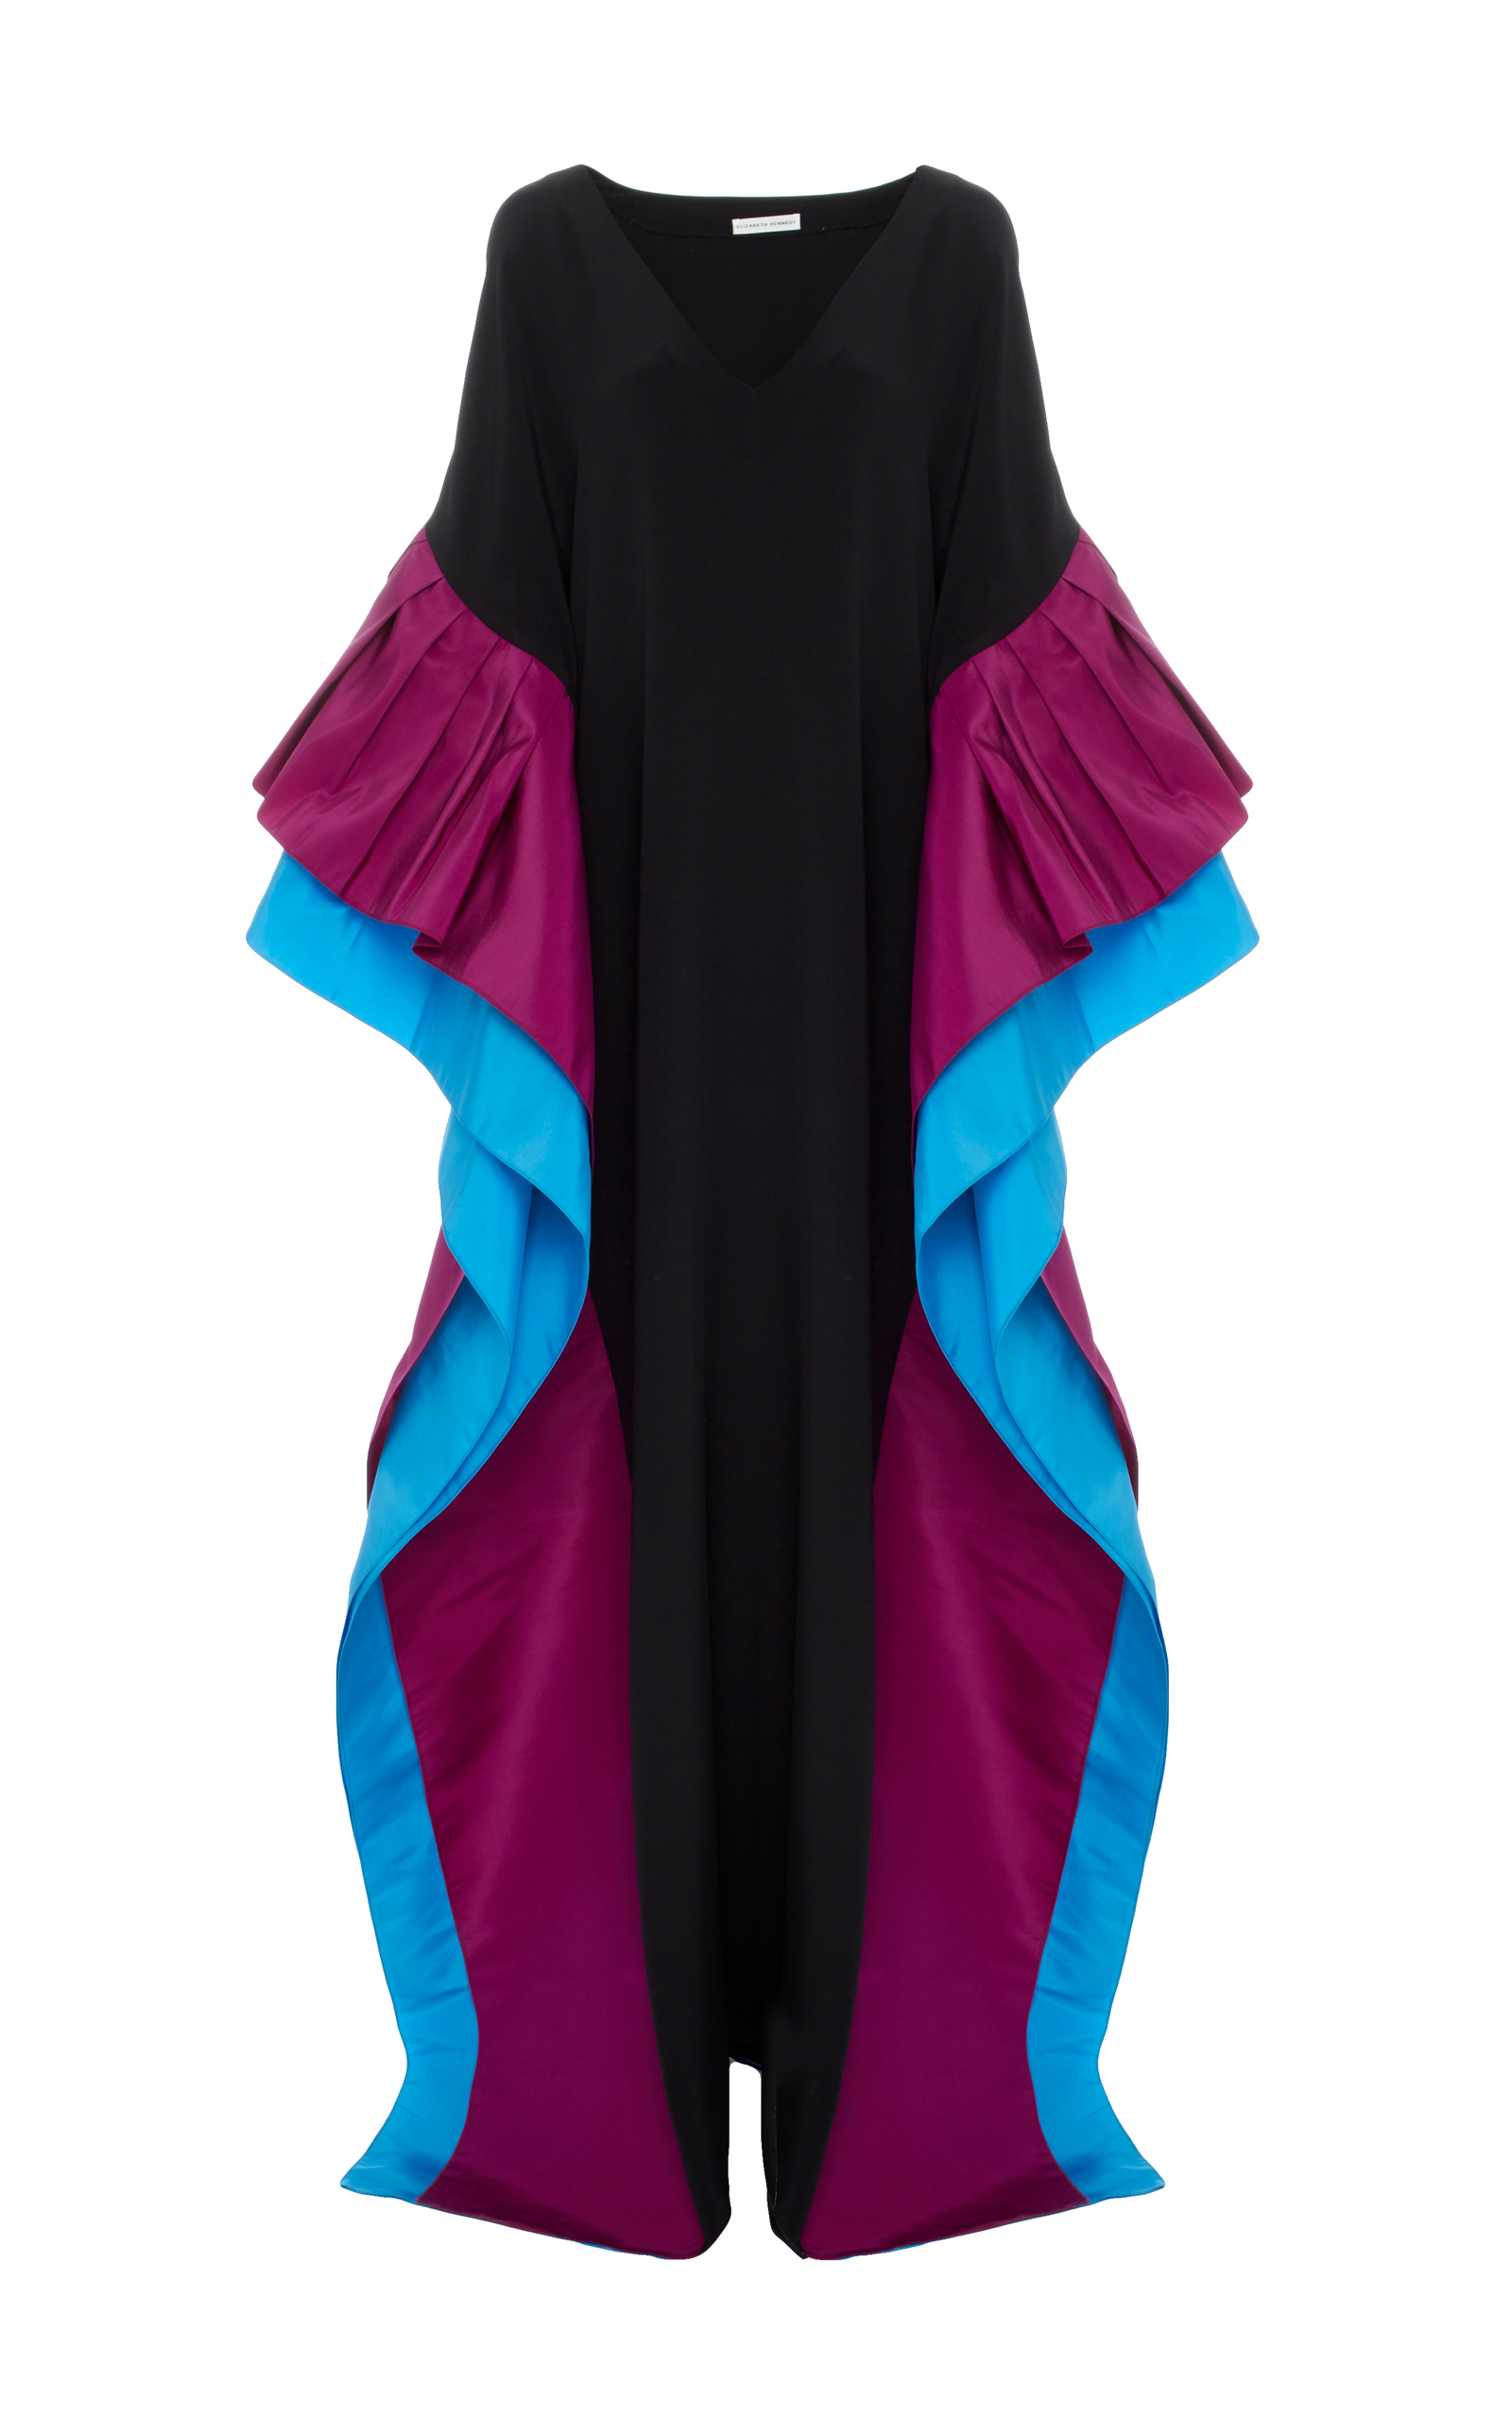 ELIZABETH KENNEDY M'O EXCLUSIVE V-NECK CAFTAN WITH PLEATS